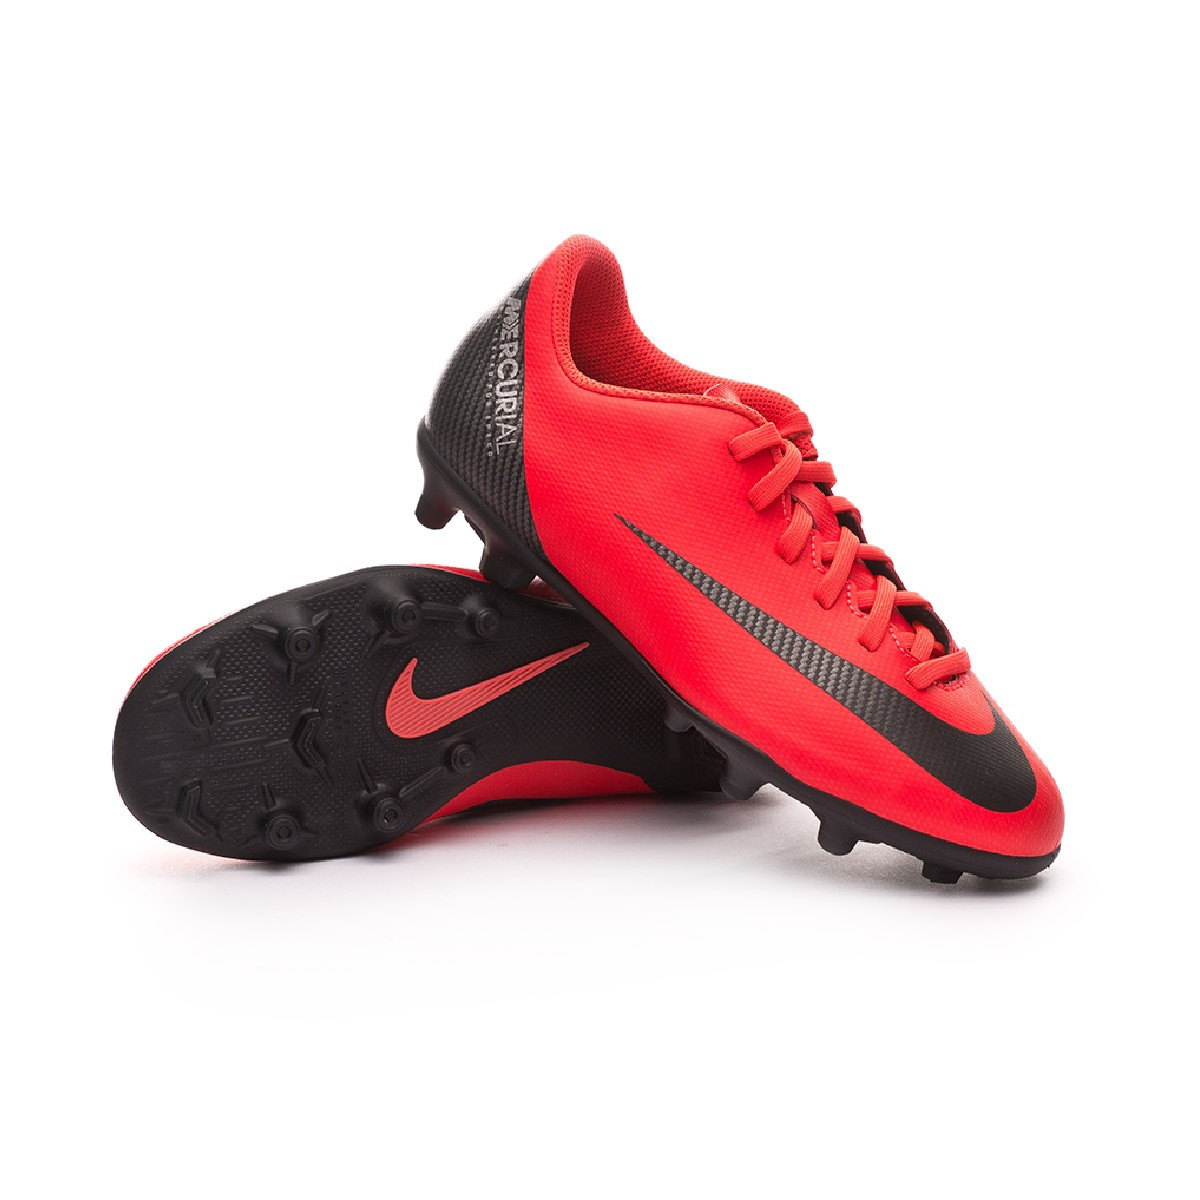 buy popular f6c1c e3b6b ... Bota Mercurial Vapor XII Club CR7 MG Niño Bright crimson-Black-Chrome.  CATEGORY